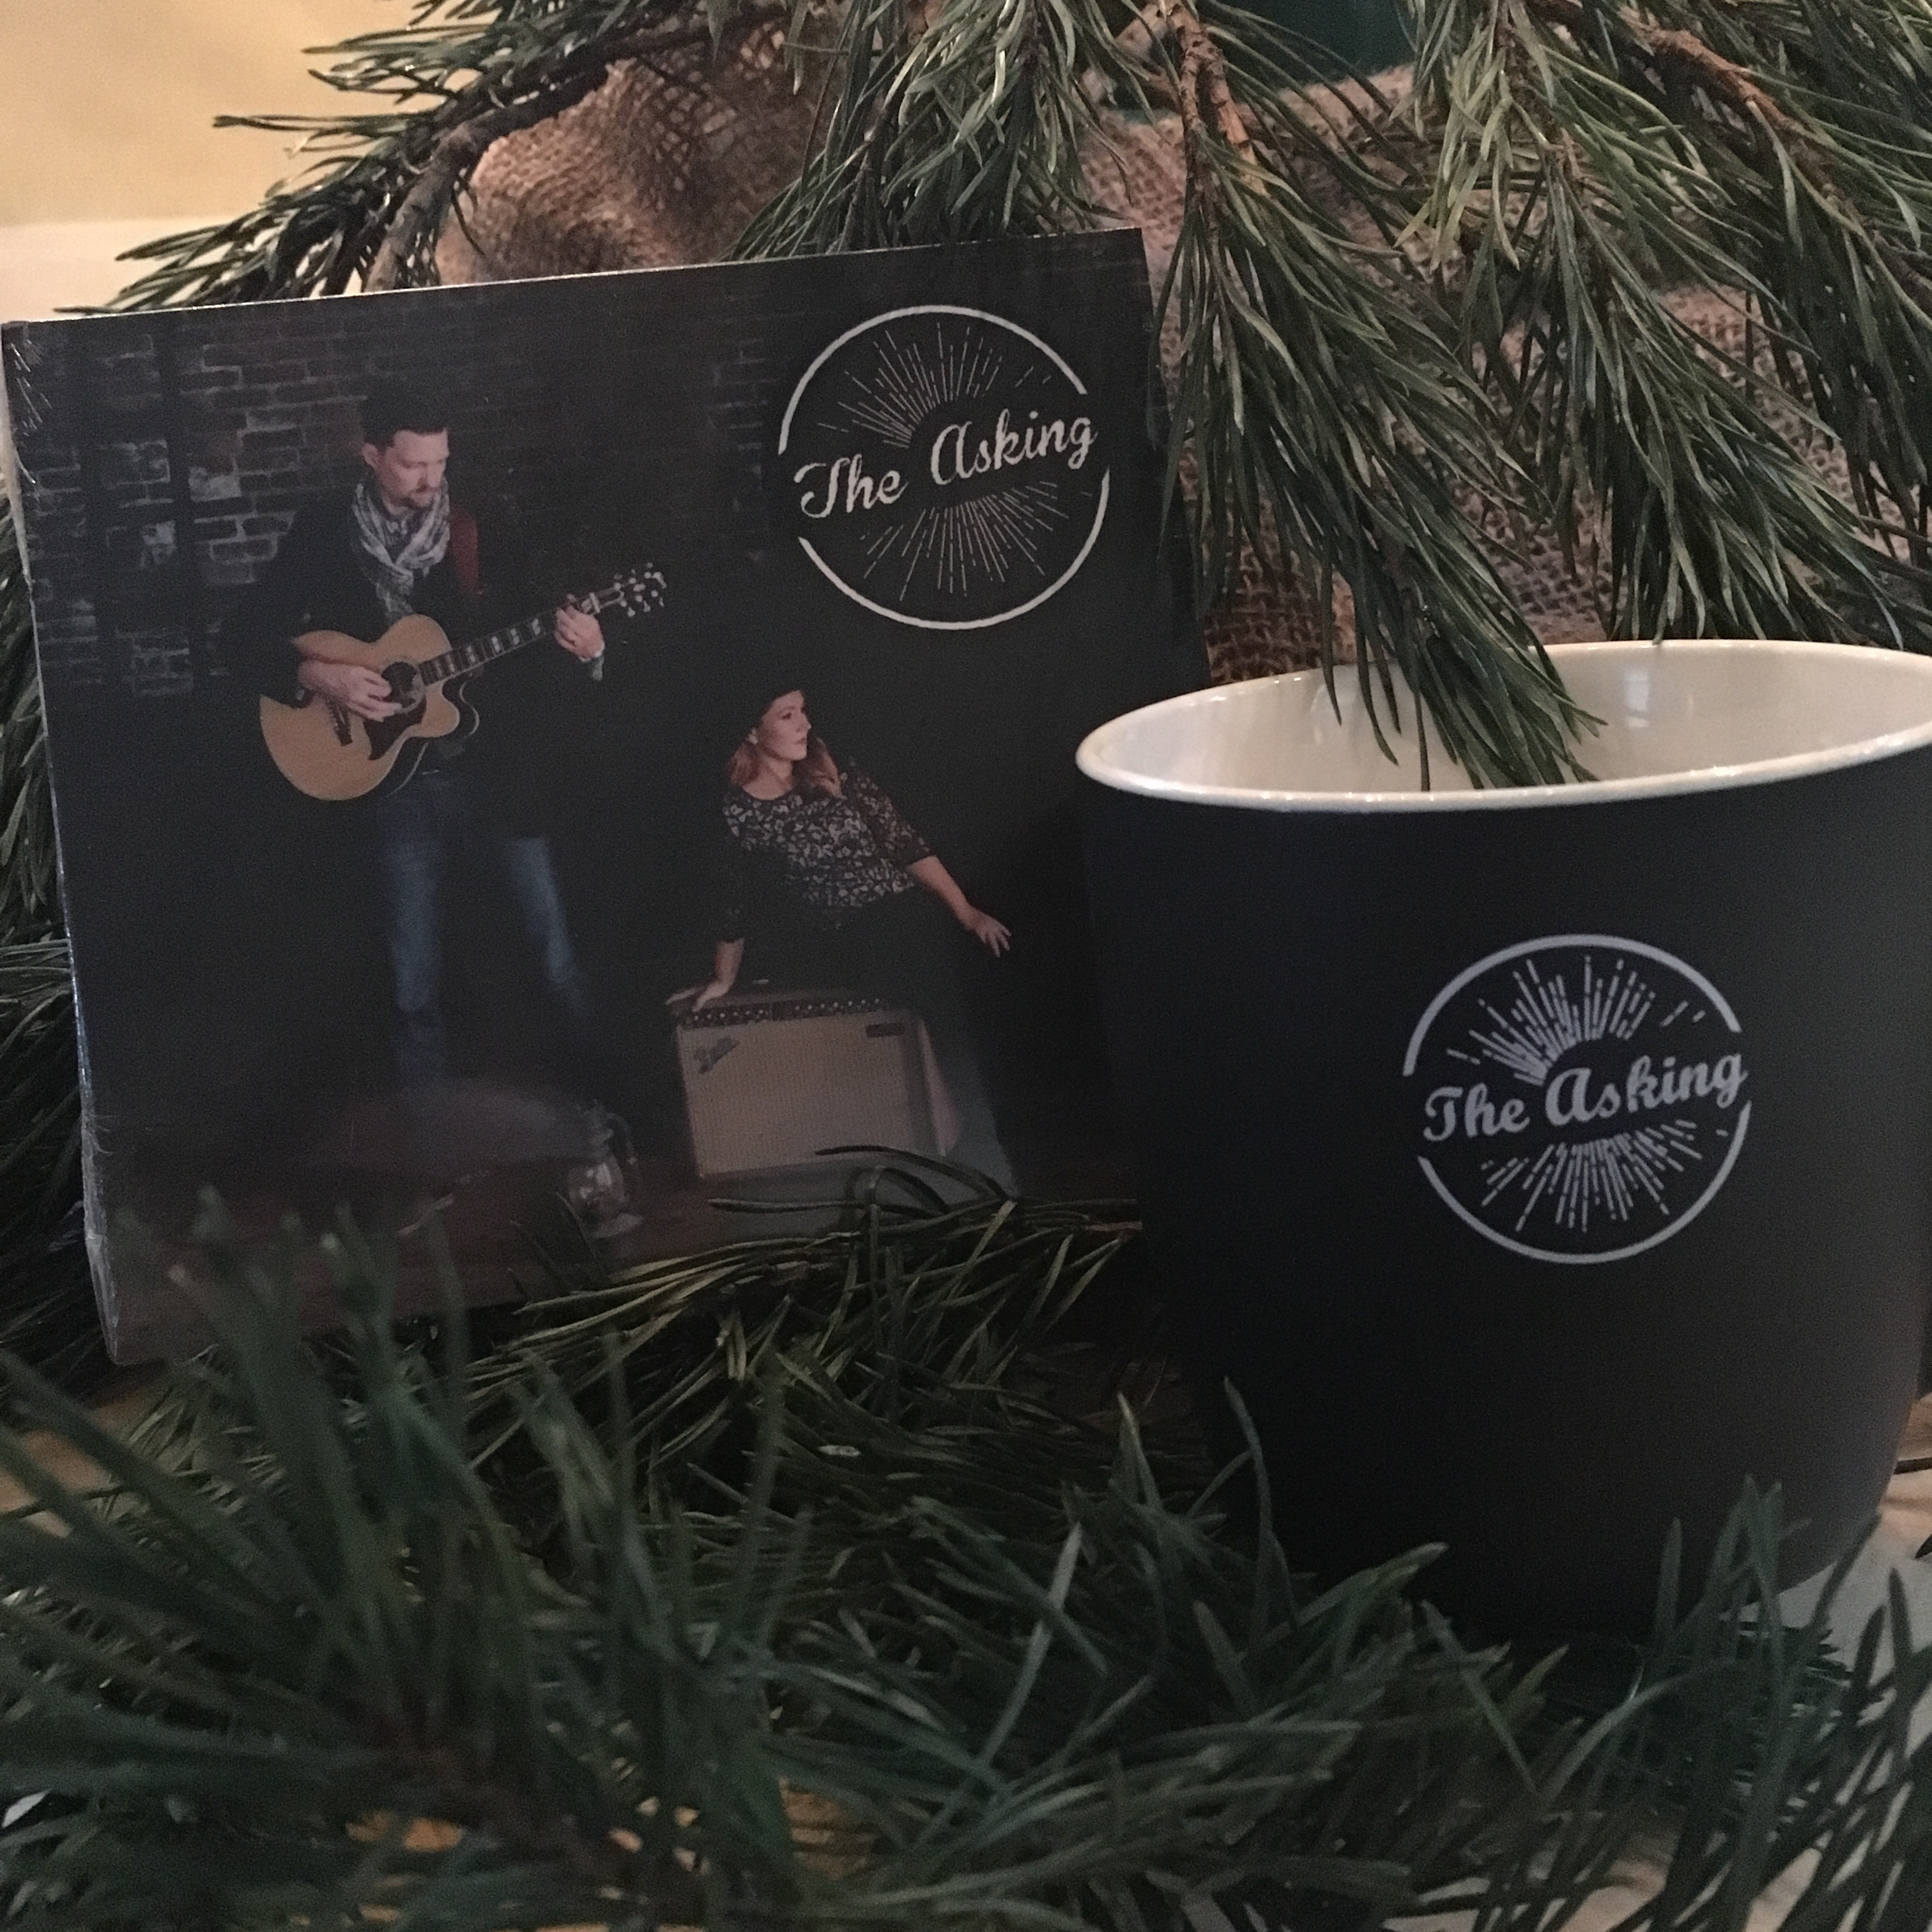 The Asking Holiday Merch